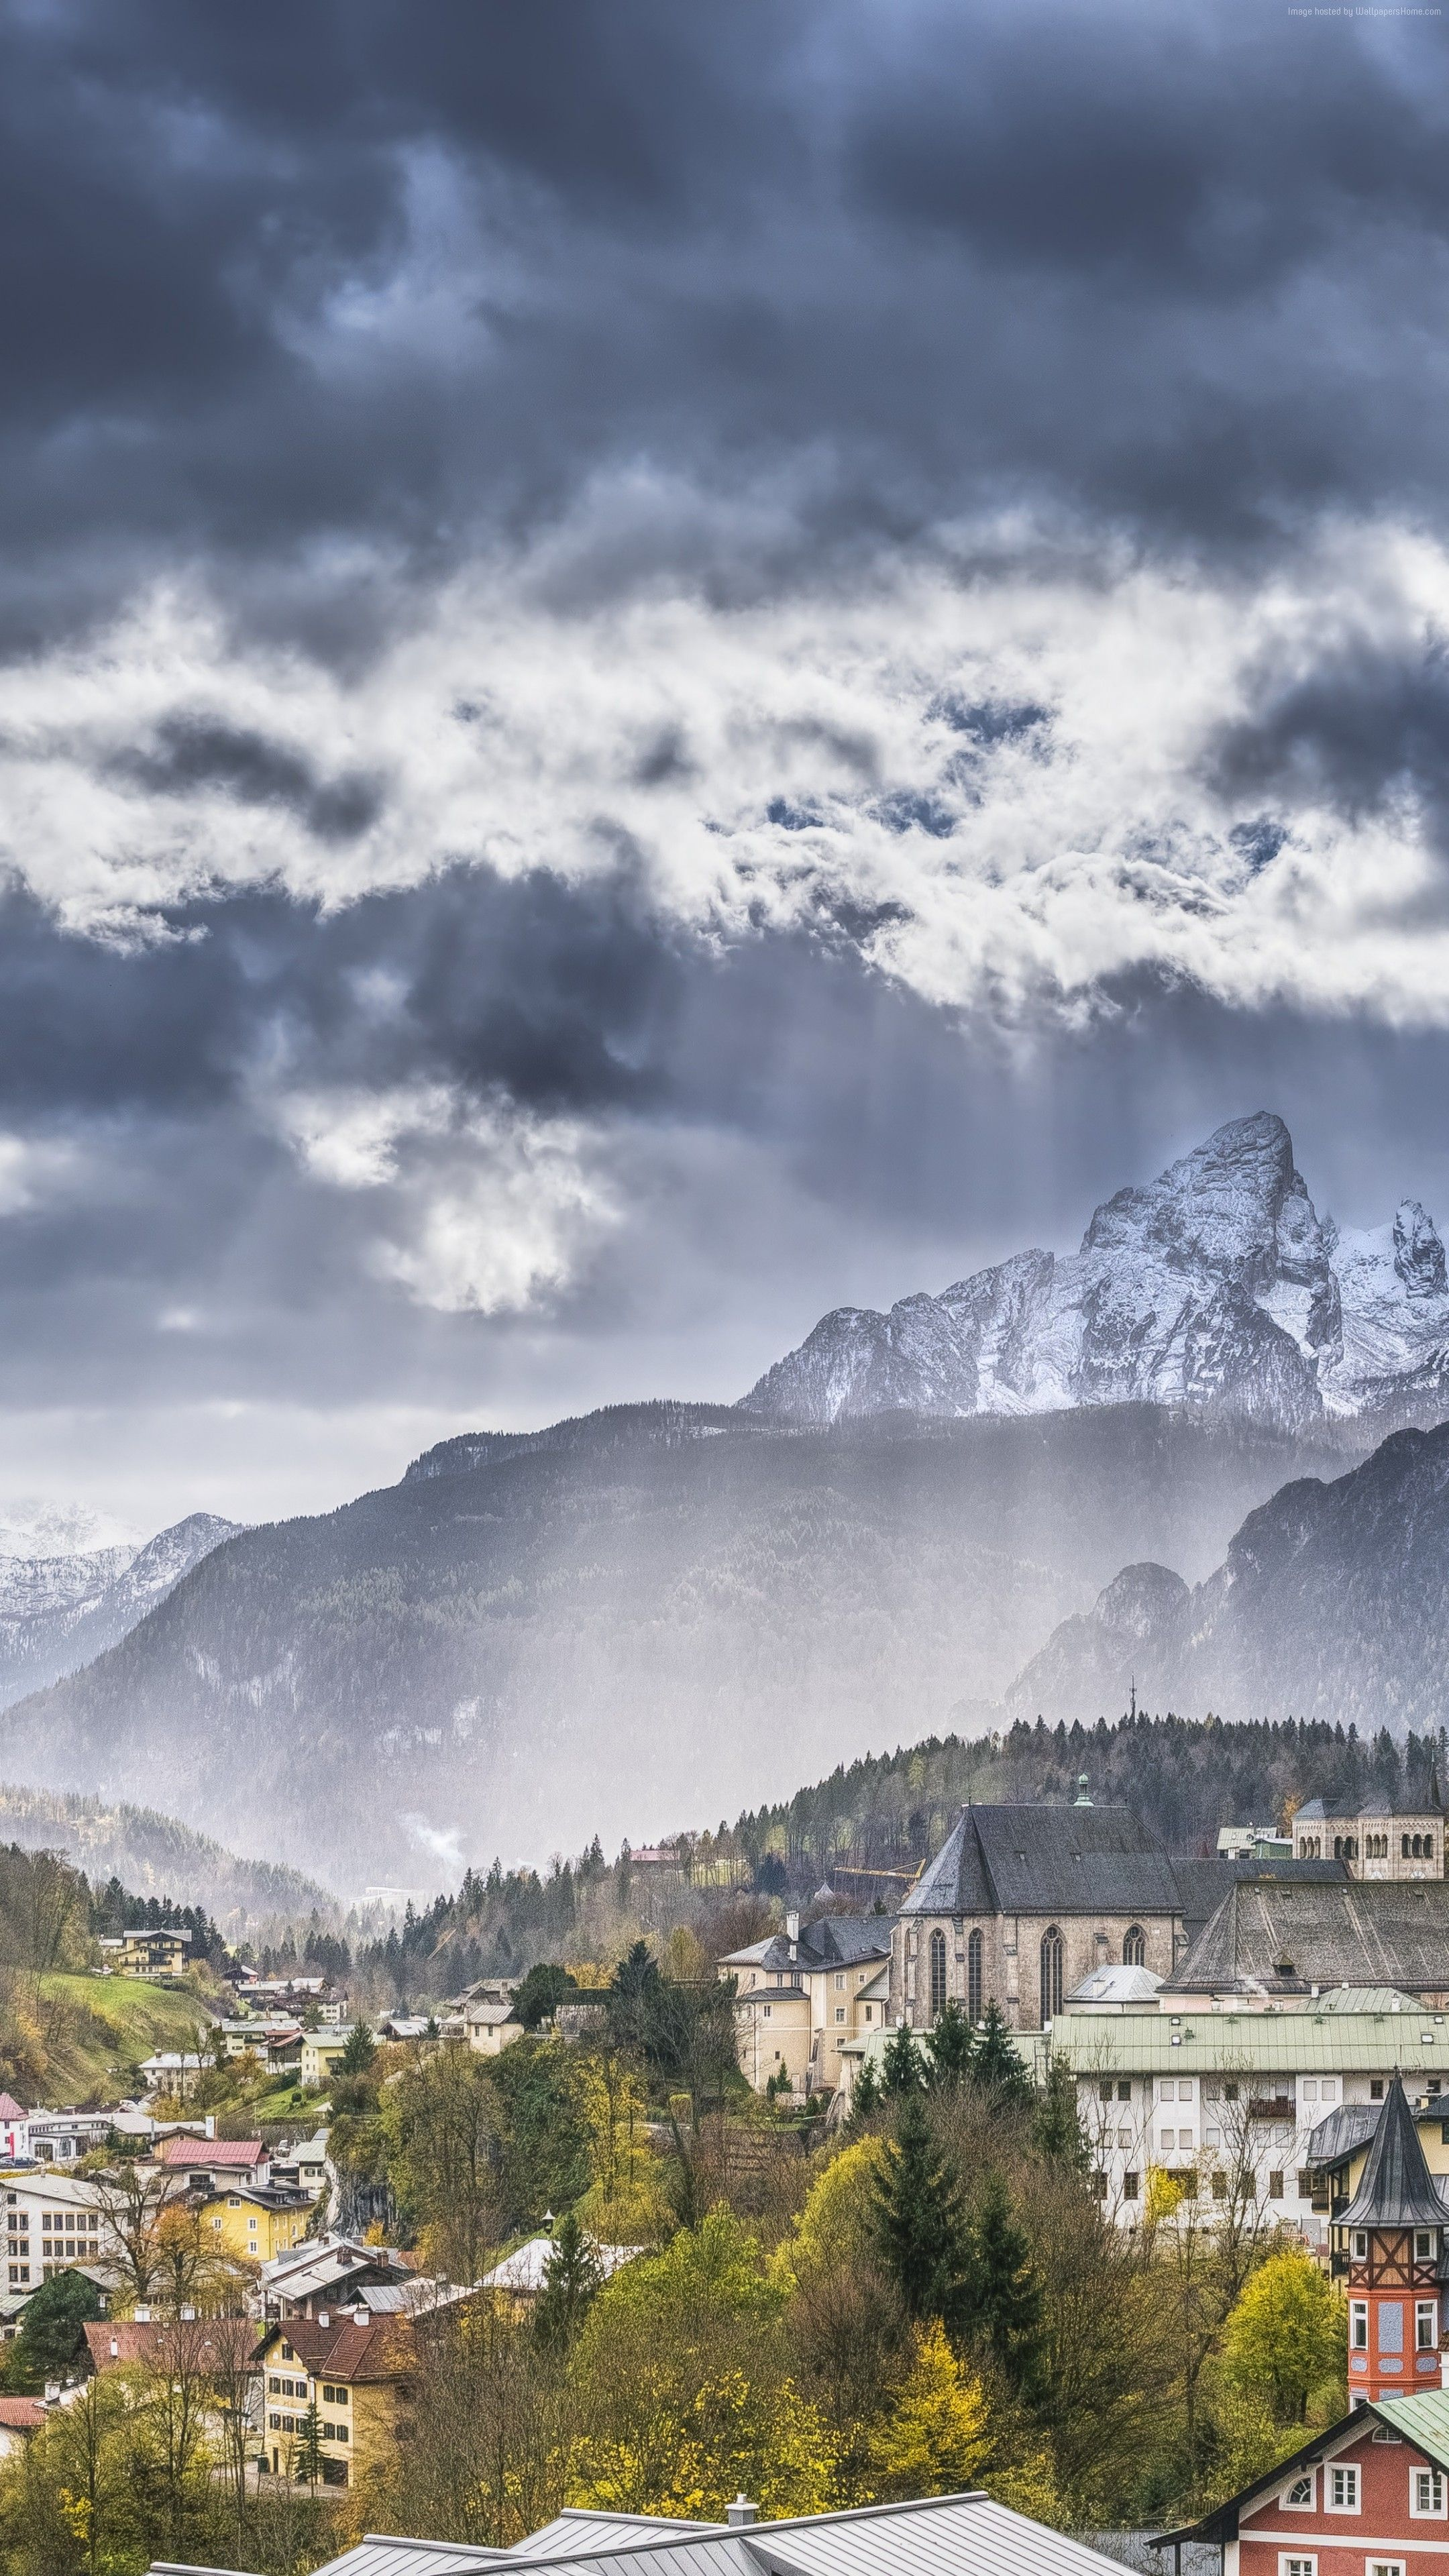 Alps Http Wallpaperhd Site Alps 2 1264 8k Clouds Europe Mountains Sky Switzerland Trees 8k Clouds Europe Mountains Sky Alps Mountains Clouds